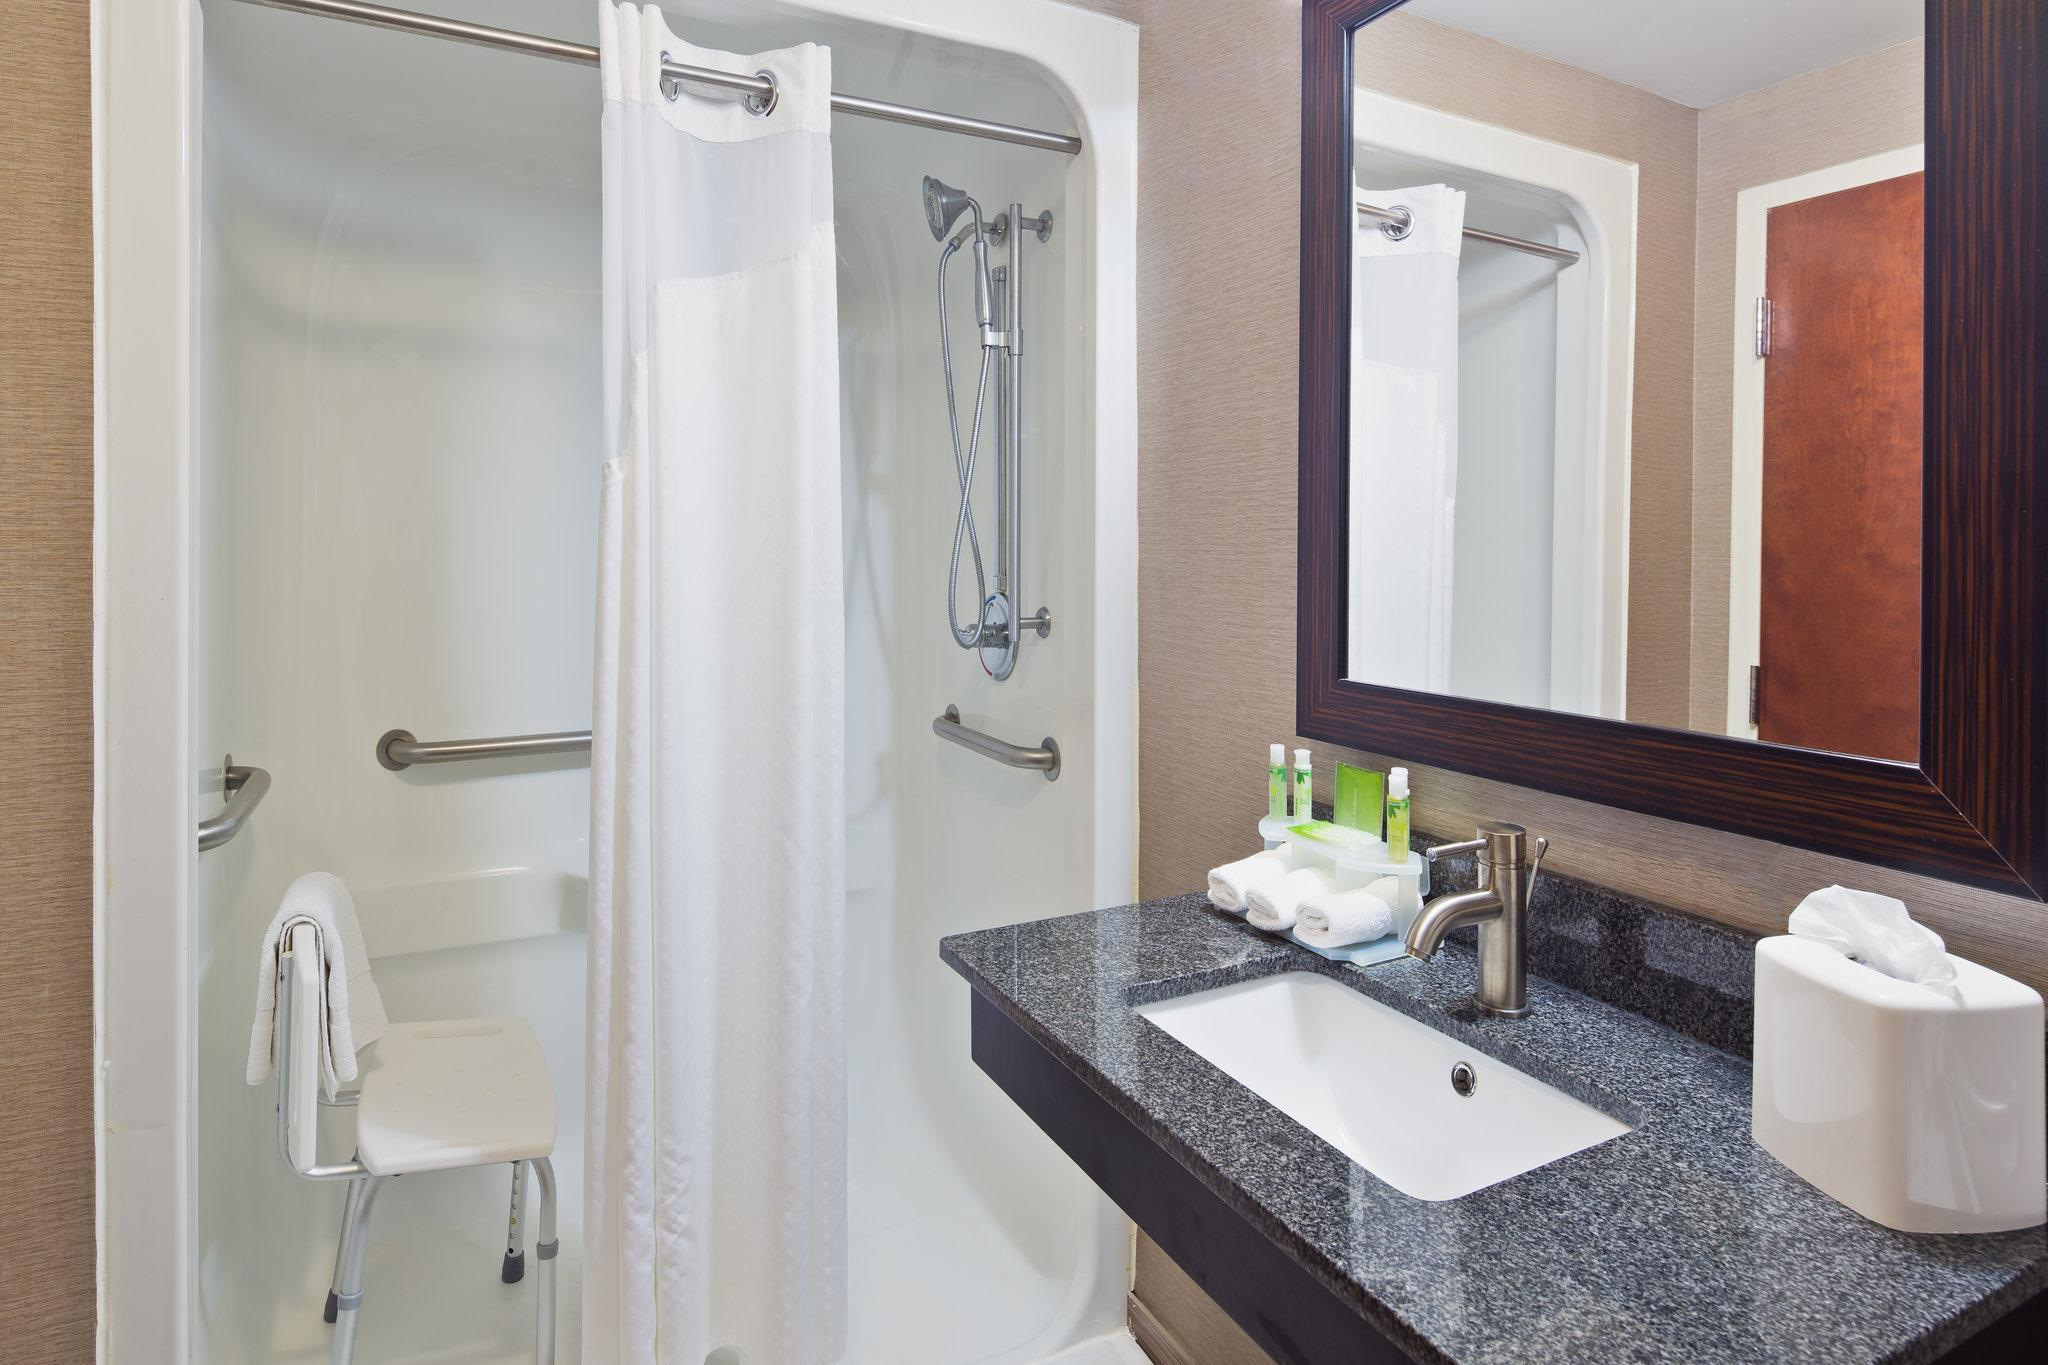 King Room with Roll-In Shower - Hearing Accessible, Non-Smoking (King Hearing Accessible Roll In Shower Non-Smoking)